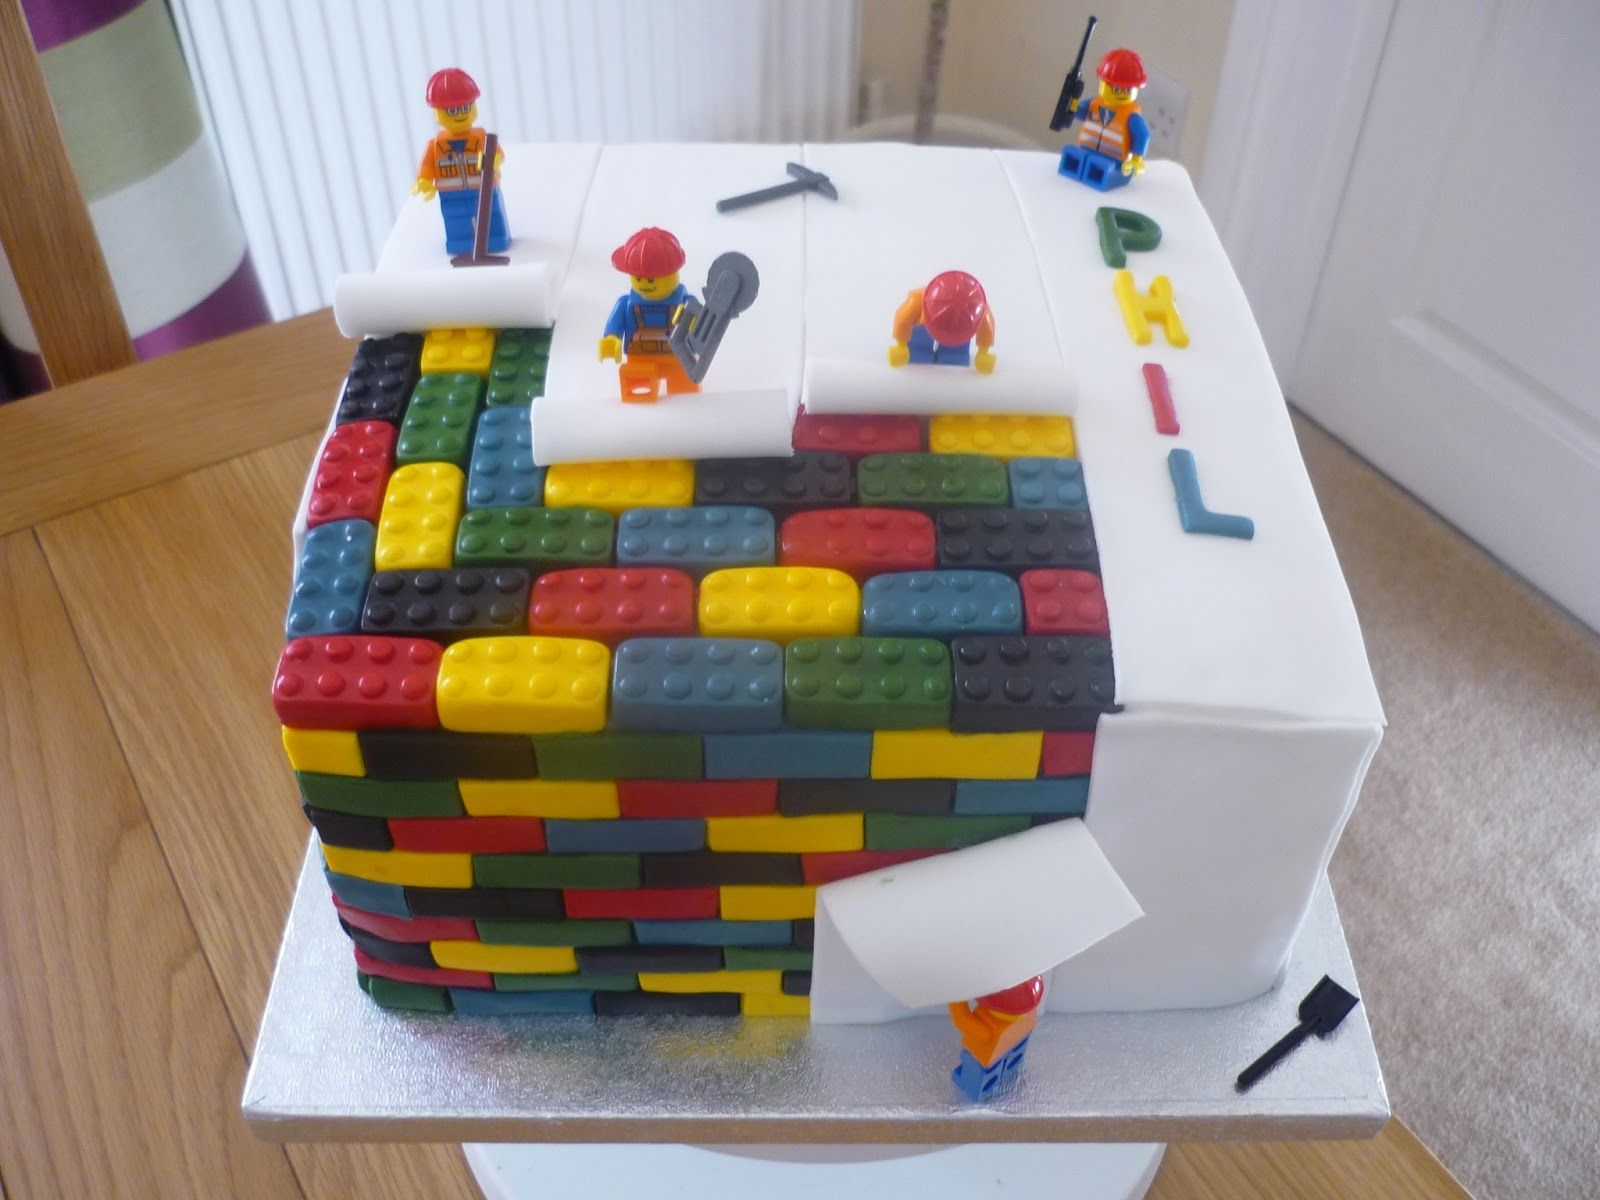 Pin by Michelle Robertson on cake ideas Pinterest Lego man cake